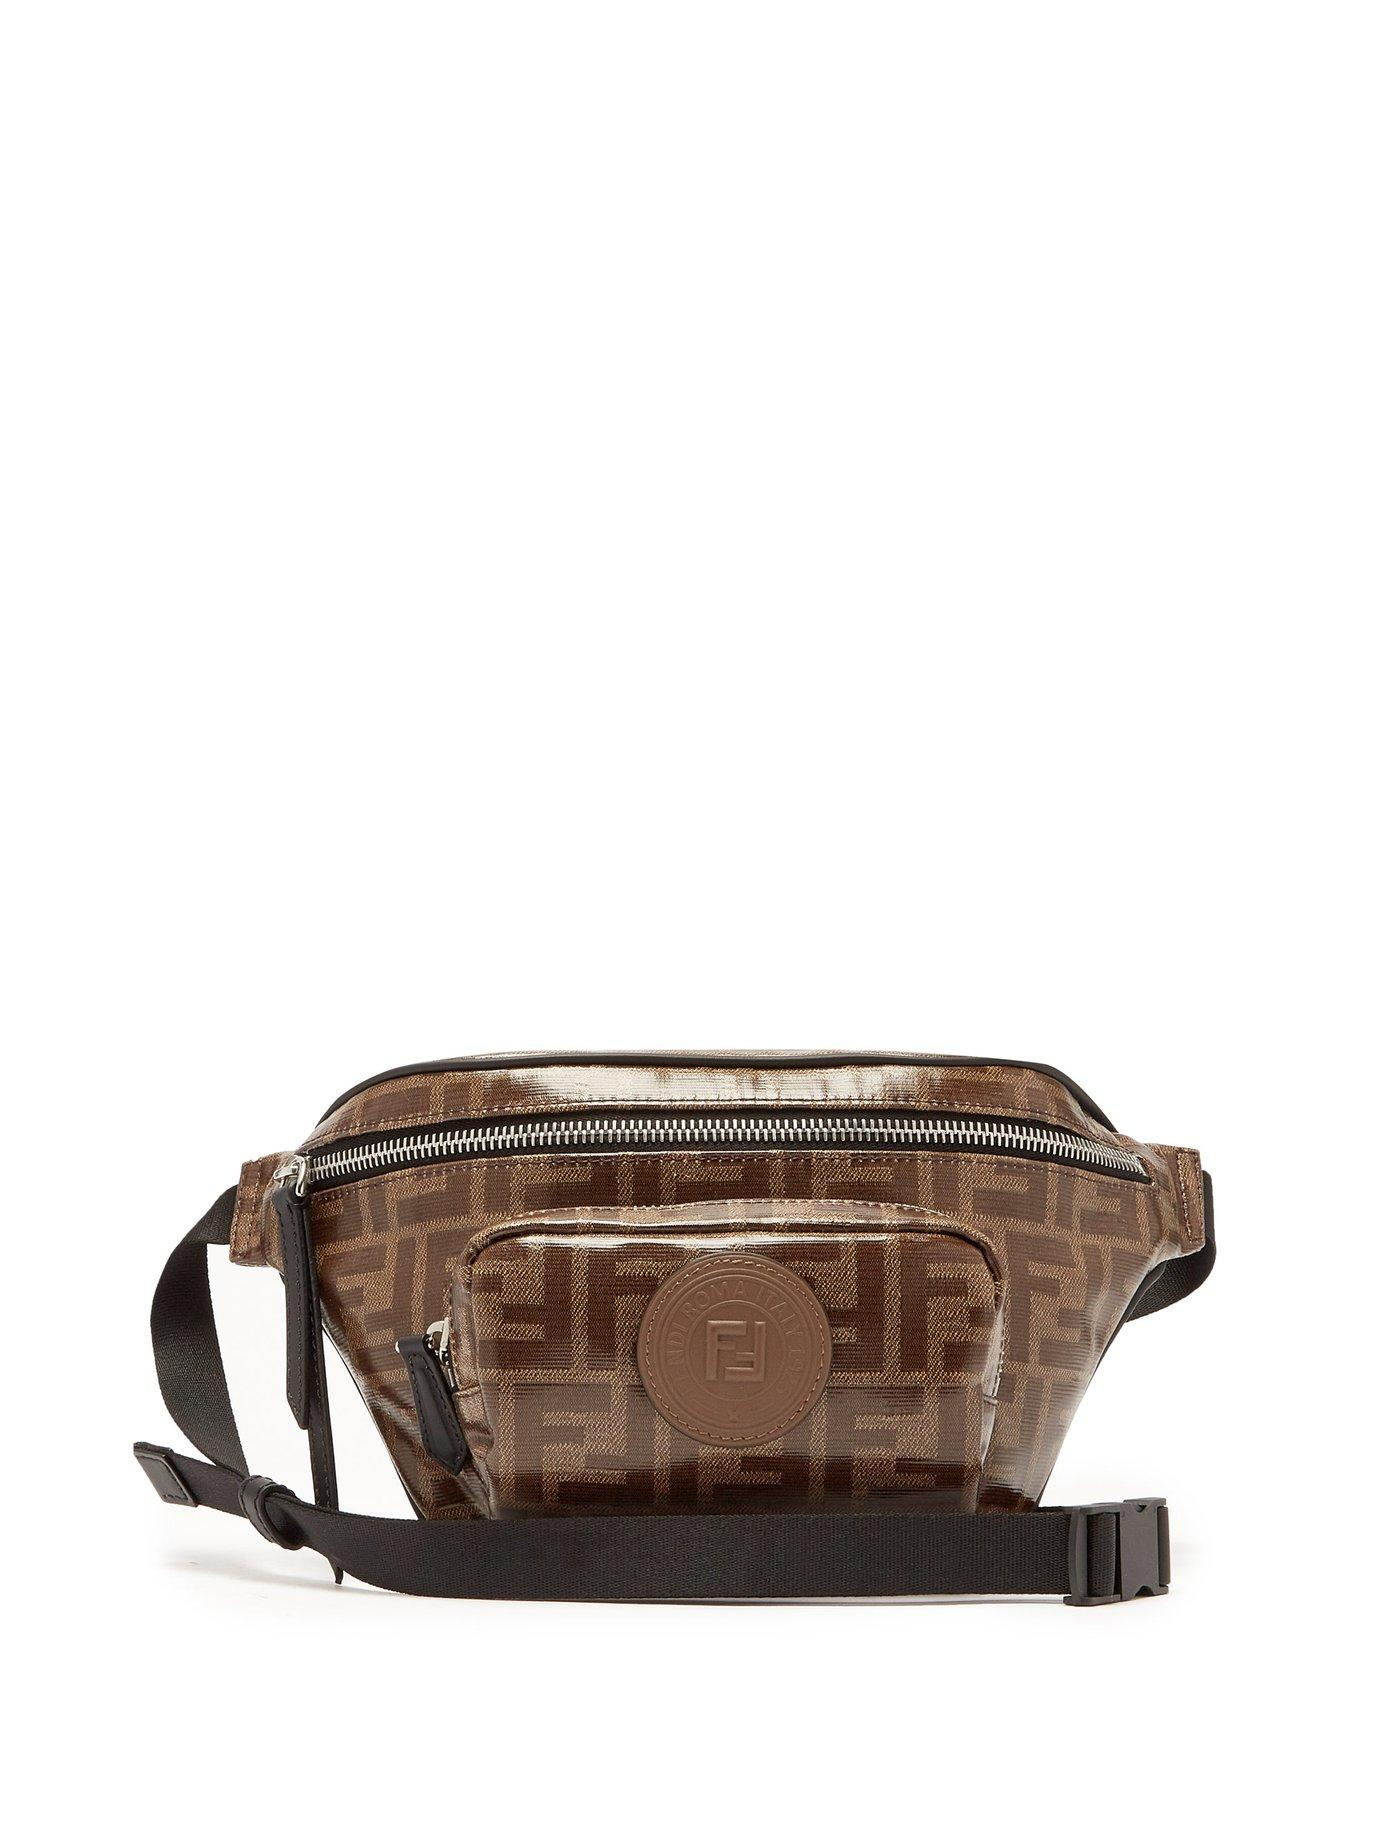 4fe926982e Lyst - Fendi Ff Logo Jacquard Canvas Belt Bag in Brown for Men